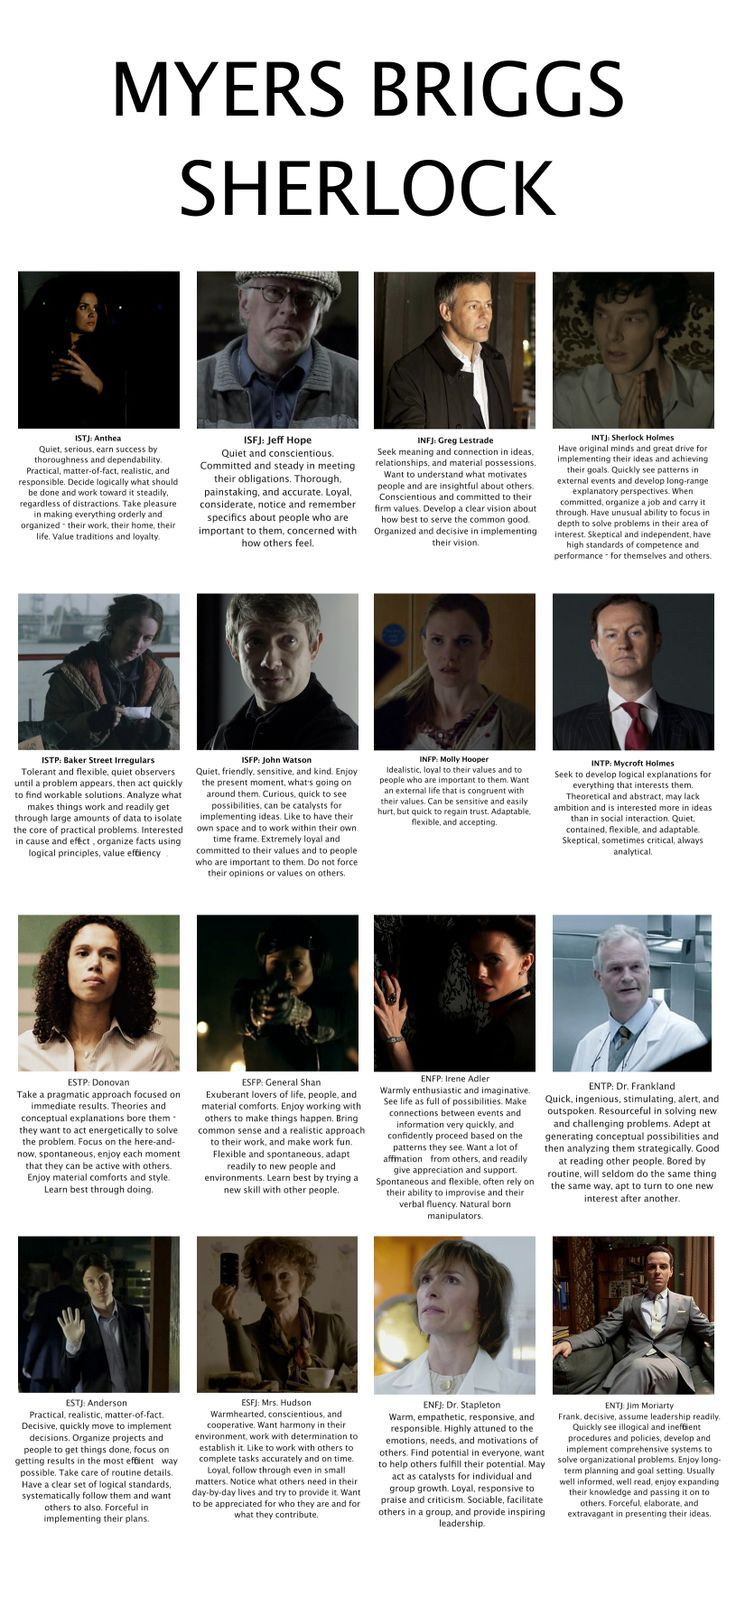 I got Sherlock/Mycroft (I'm worried) ! To do the test, click the image. Do the test, then find which character matches the 4 letters that you end with.